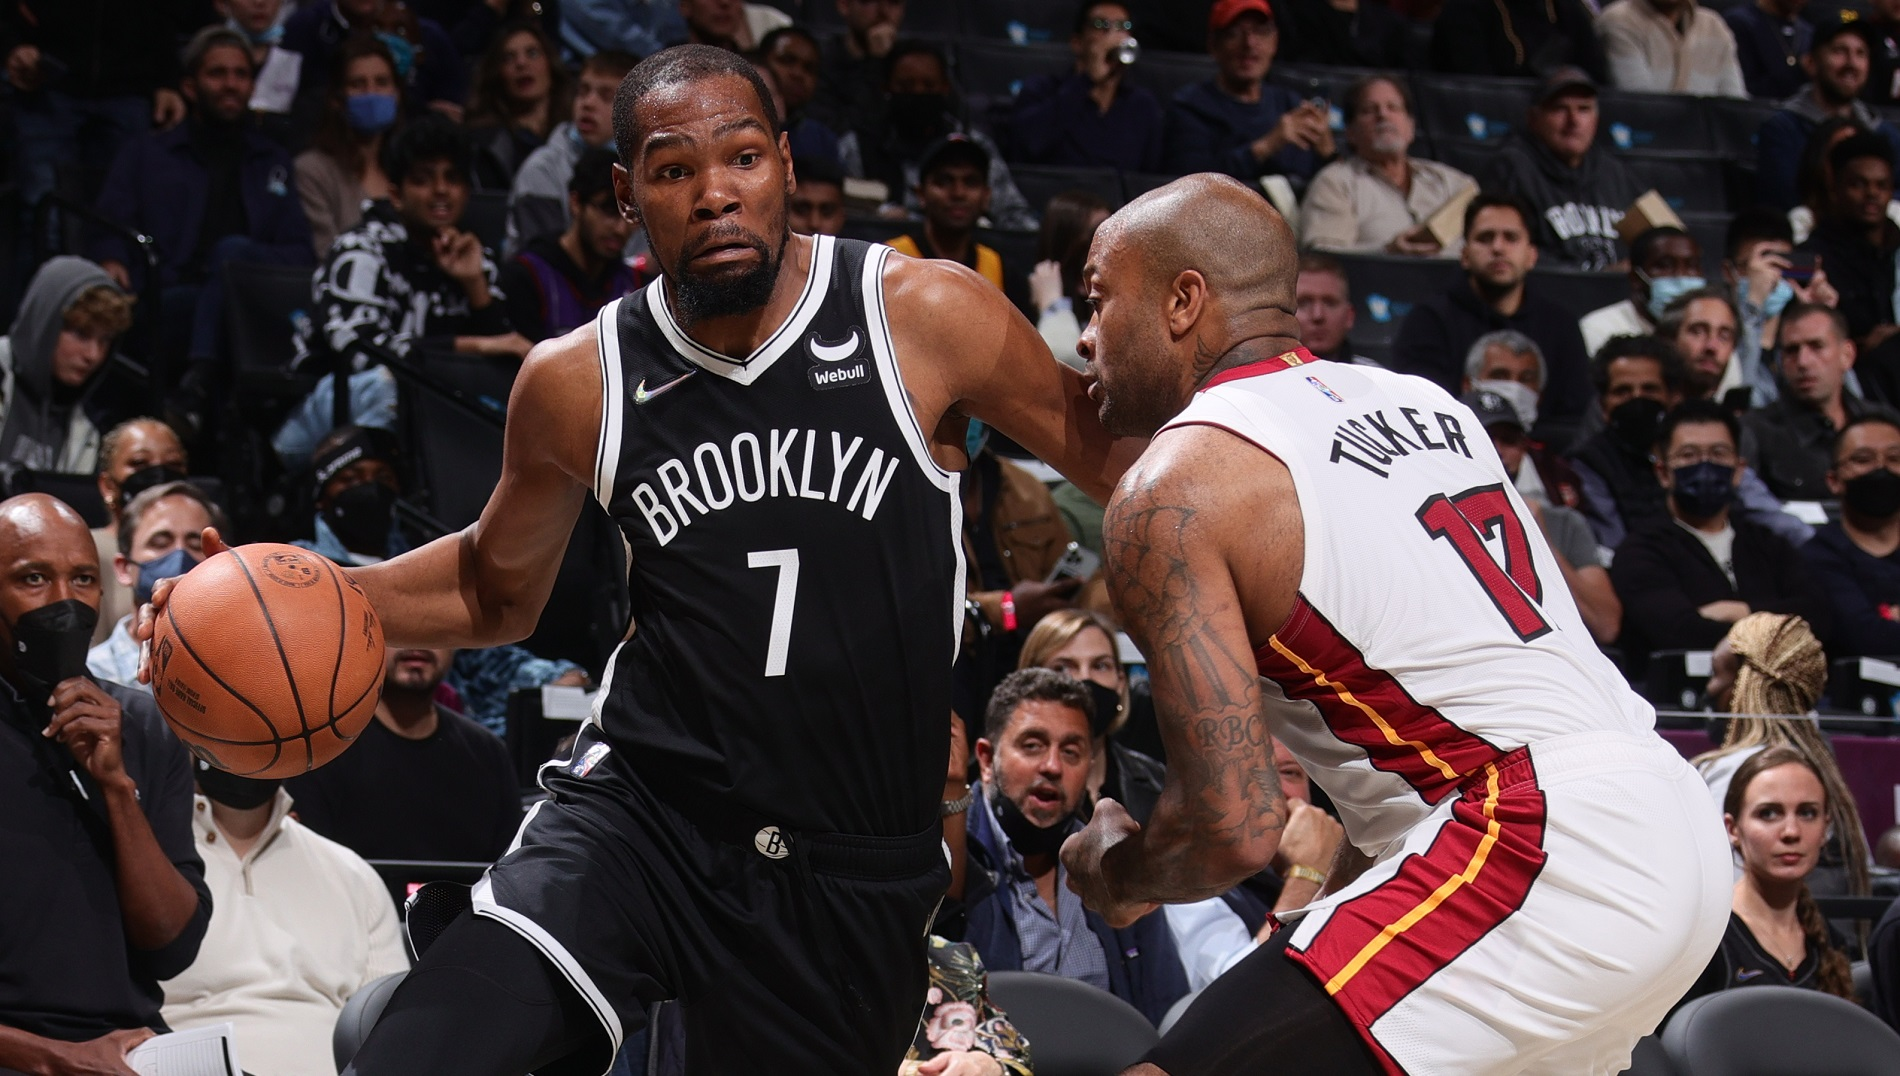 East powers square off as Miami travels to Brooklyn